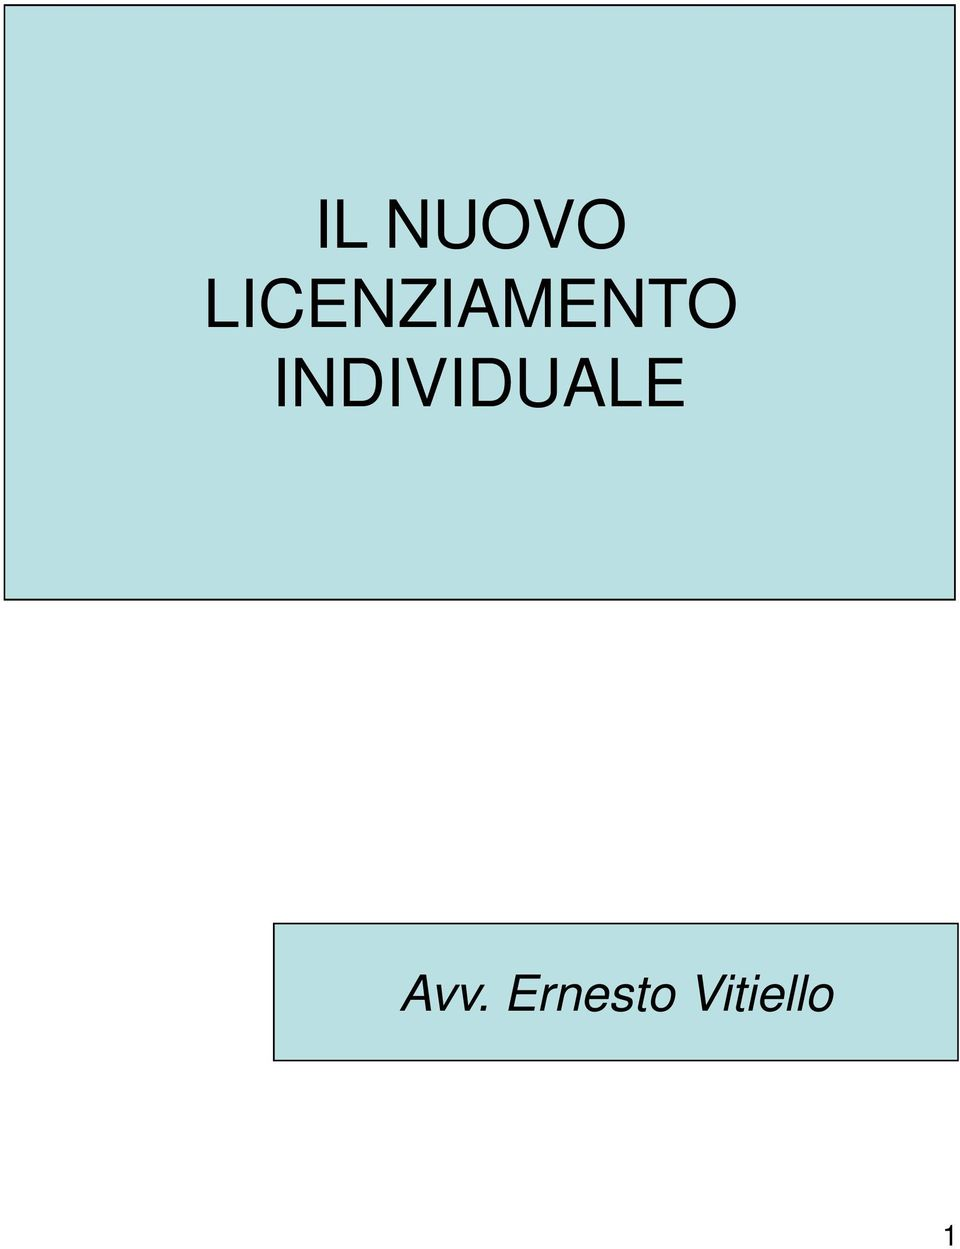 INDIVIDUALE